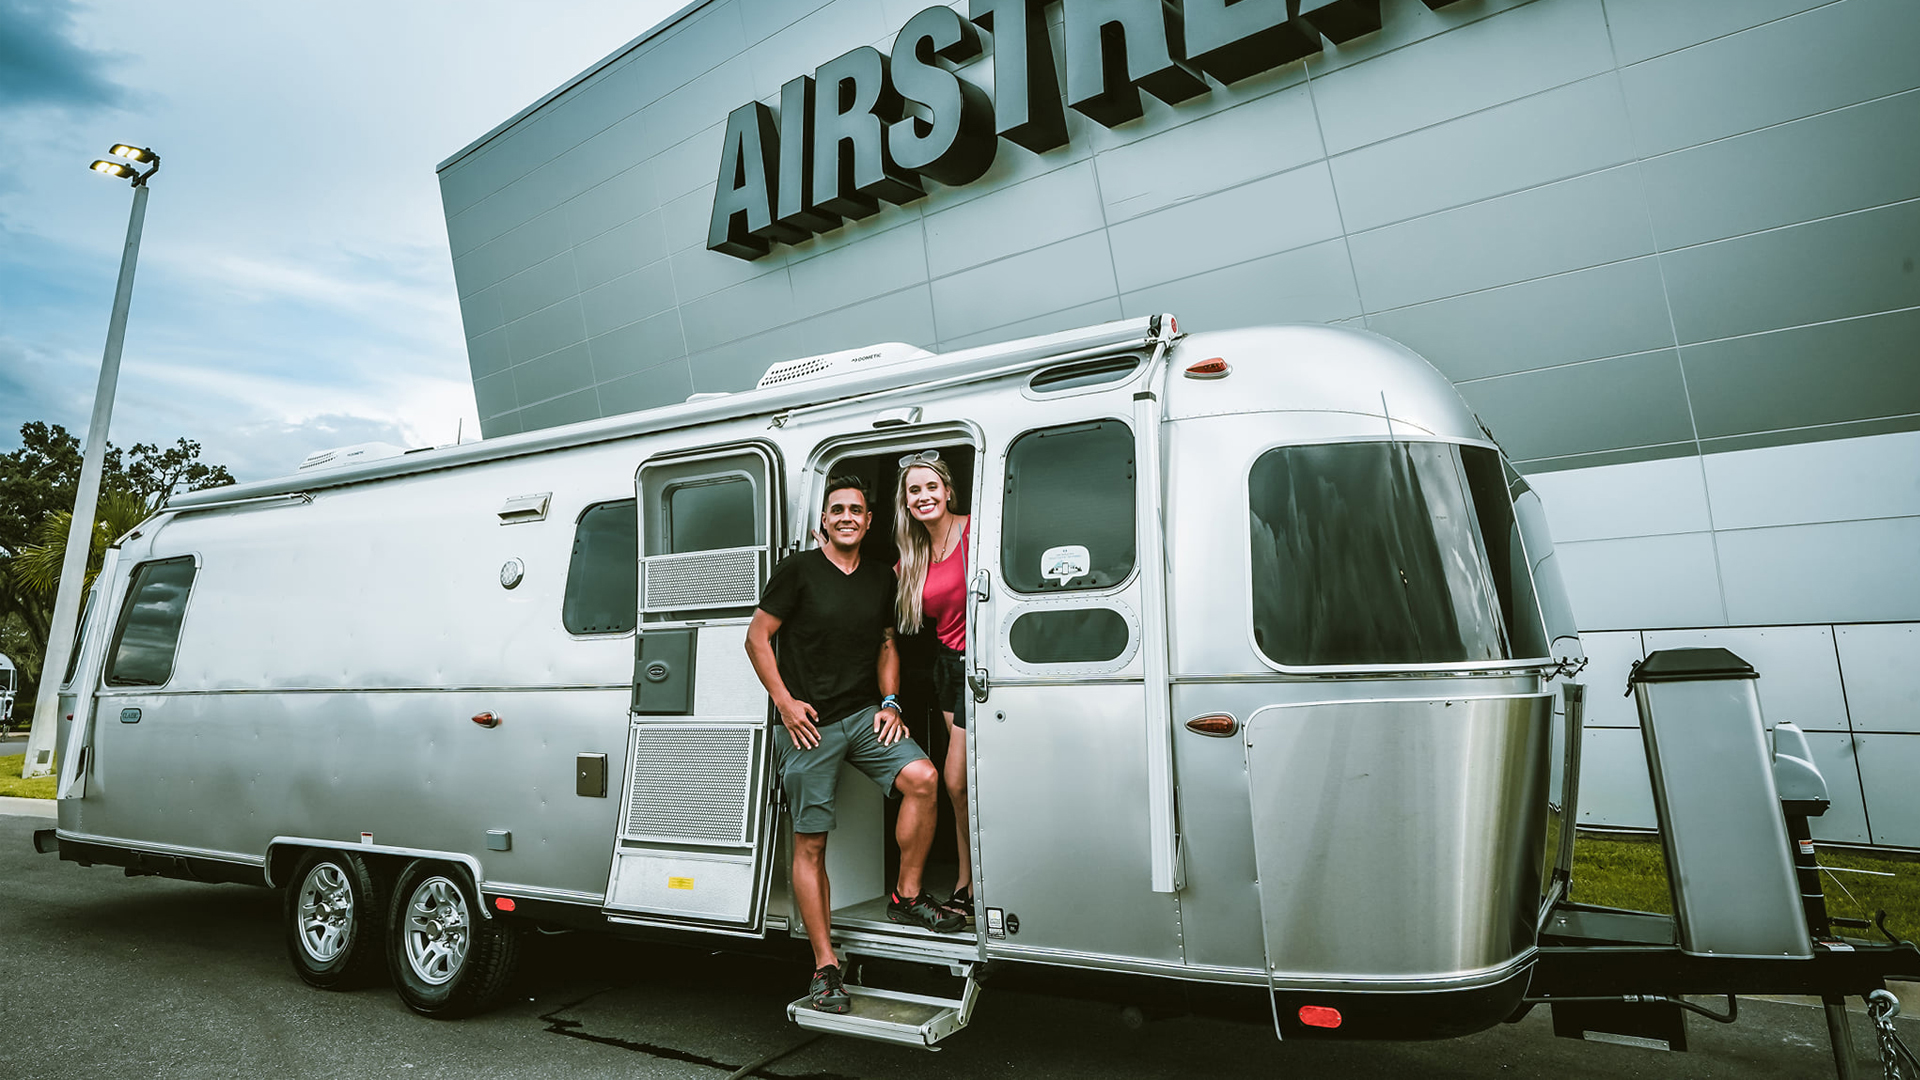 What-to-know-about-the-Airstream-life